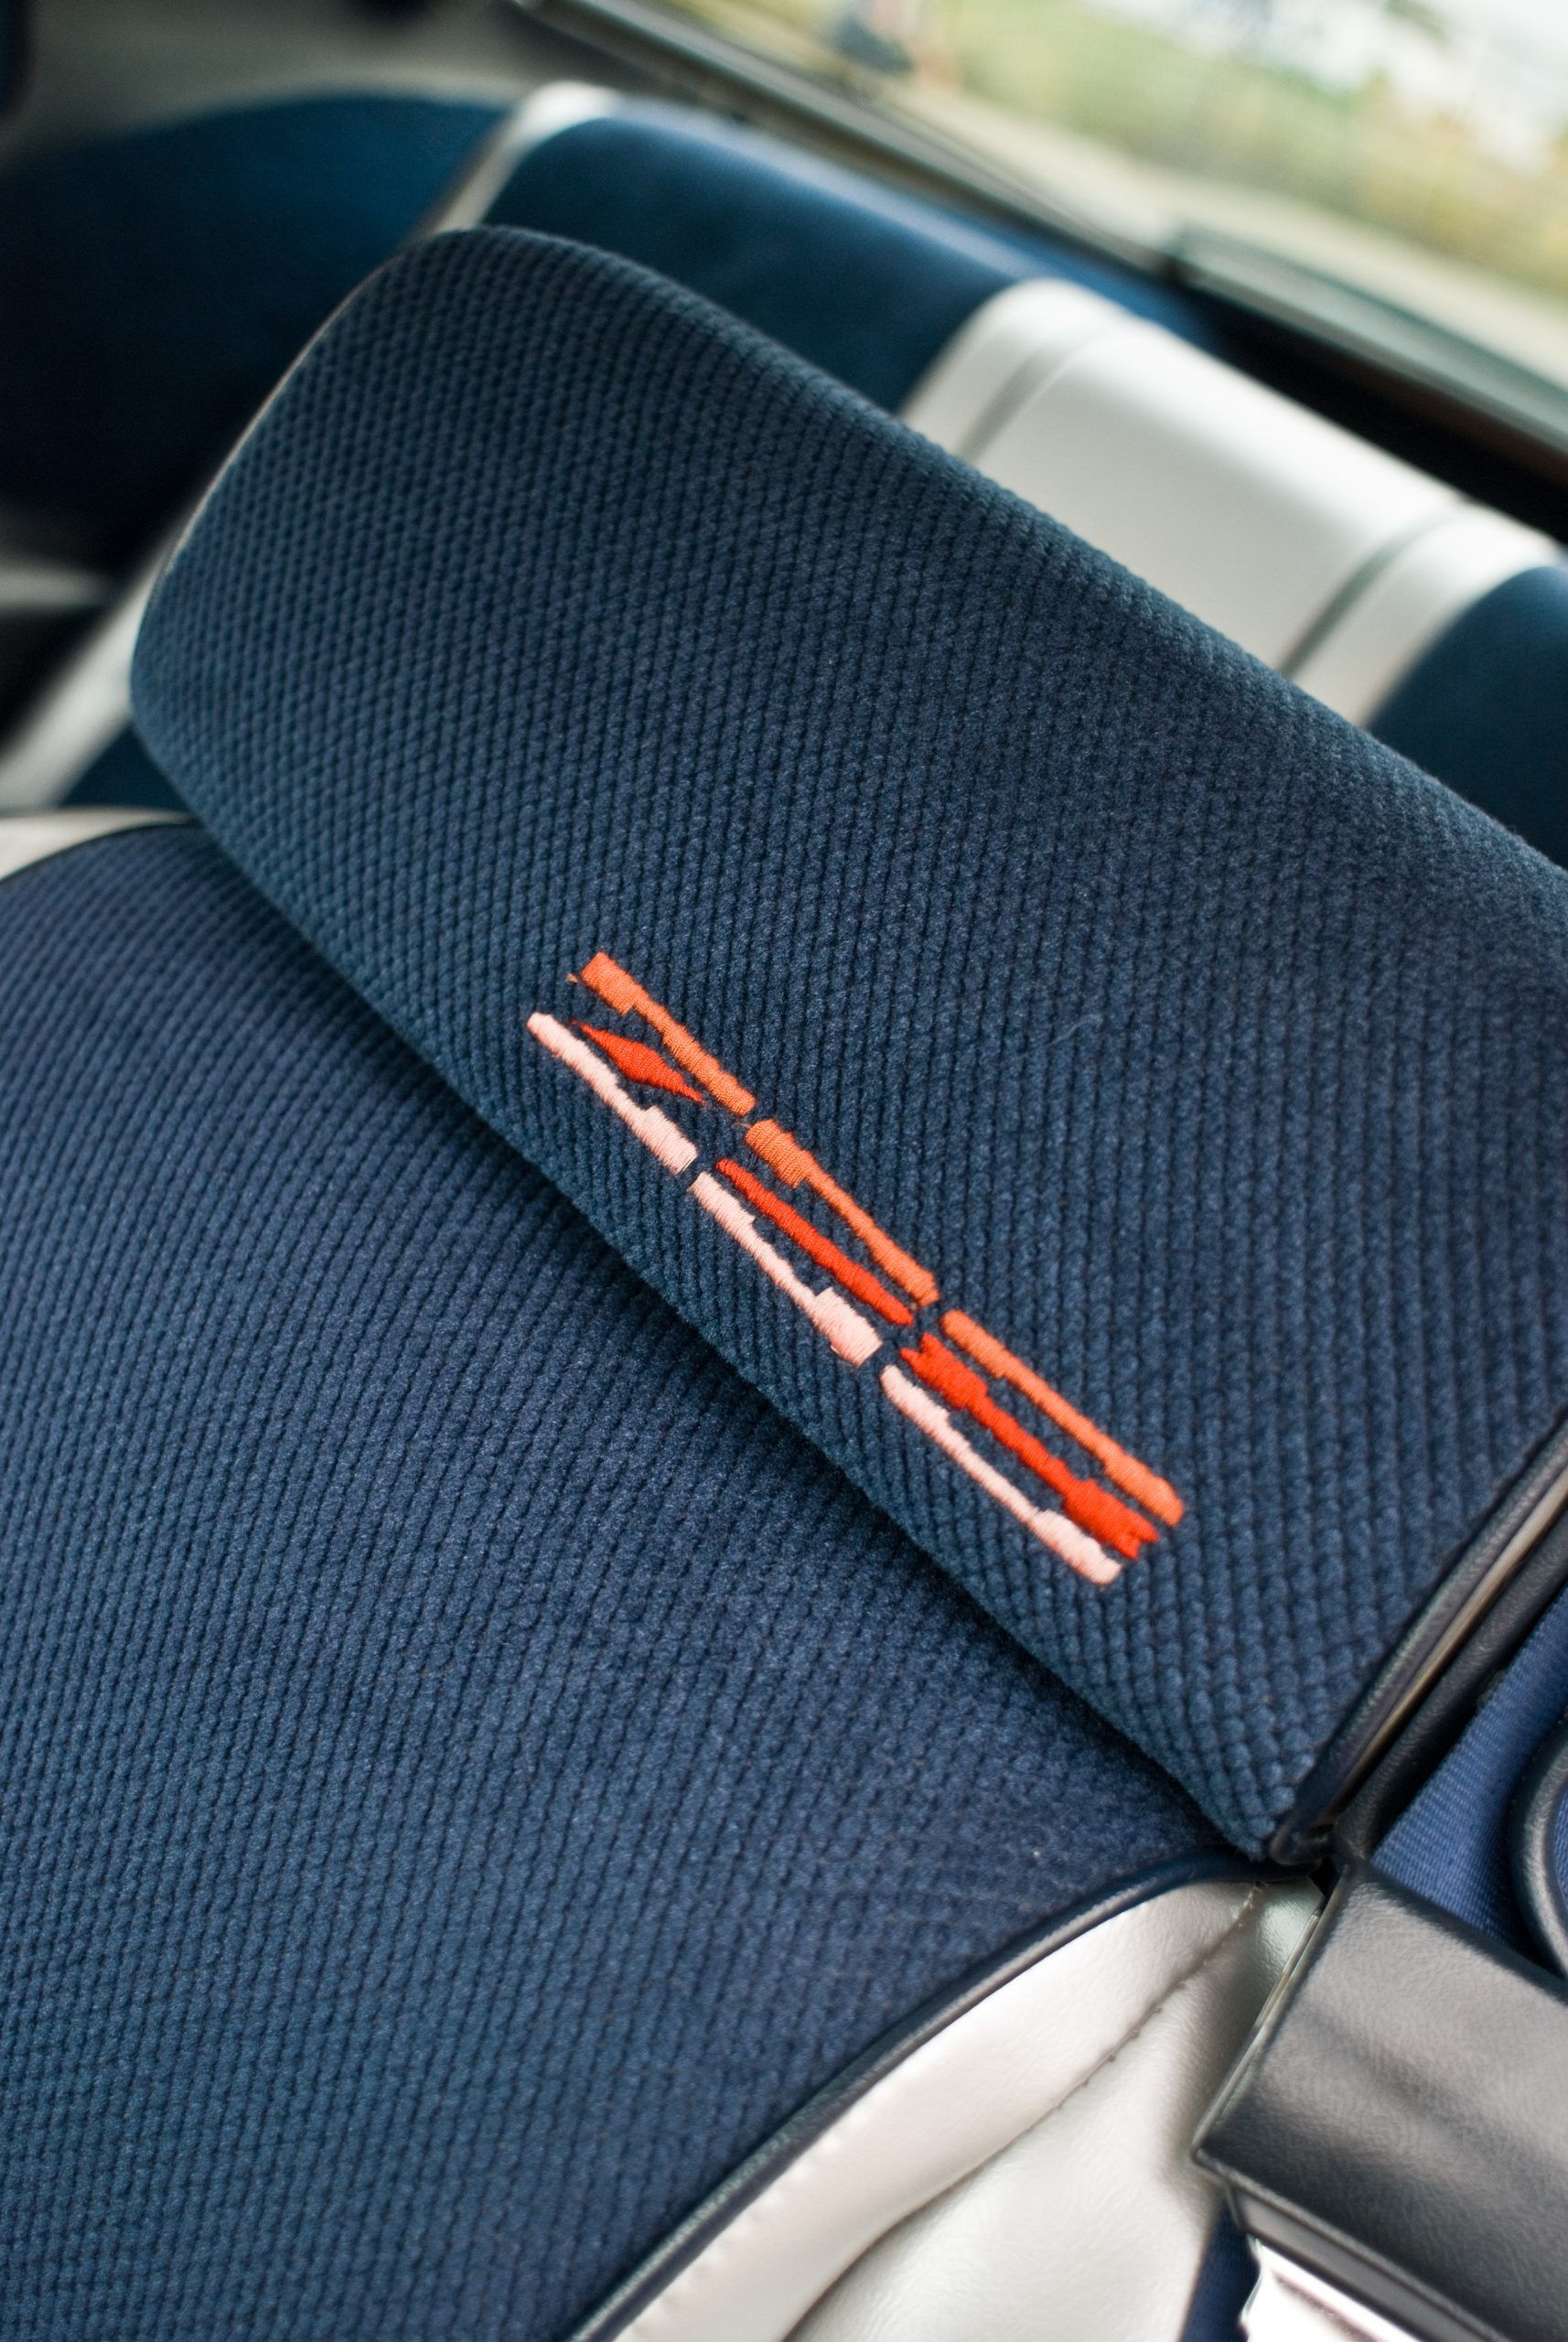 Chevrolet Camaro Z28 Interior Embroidery